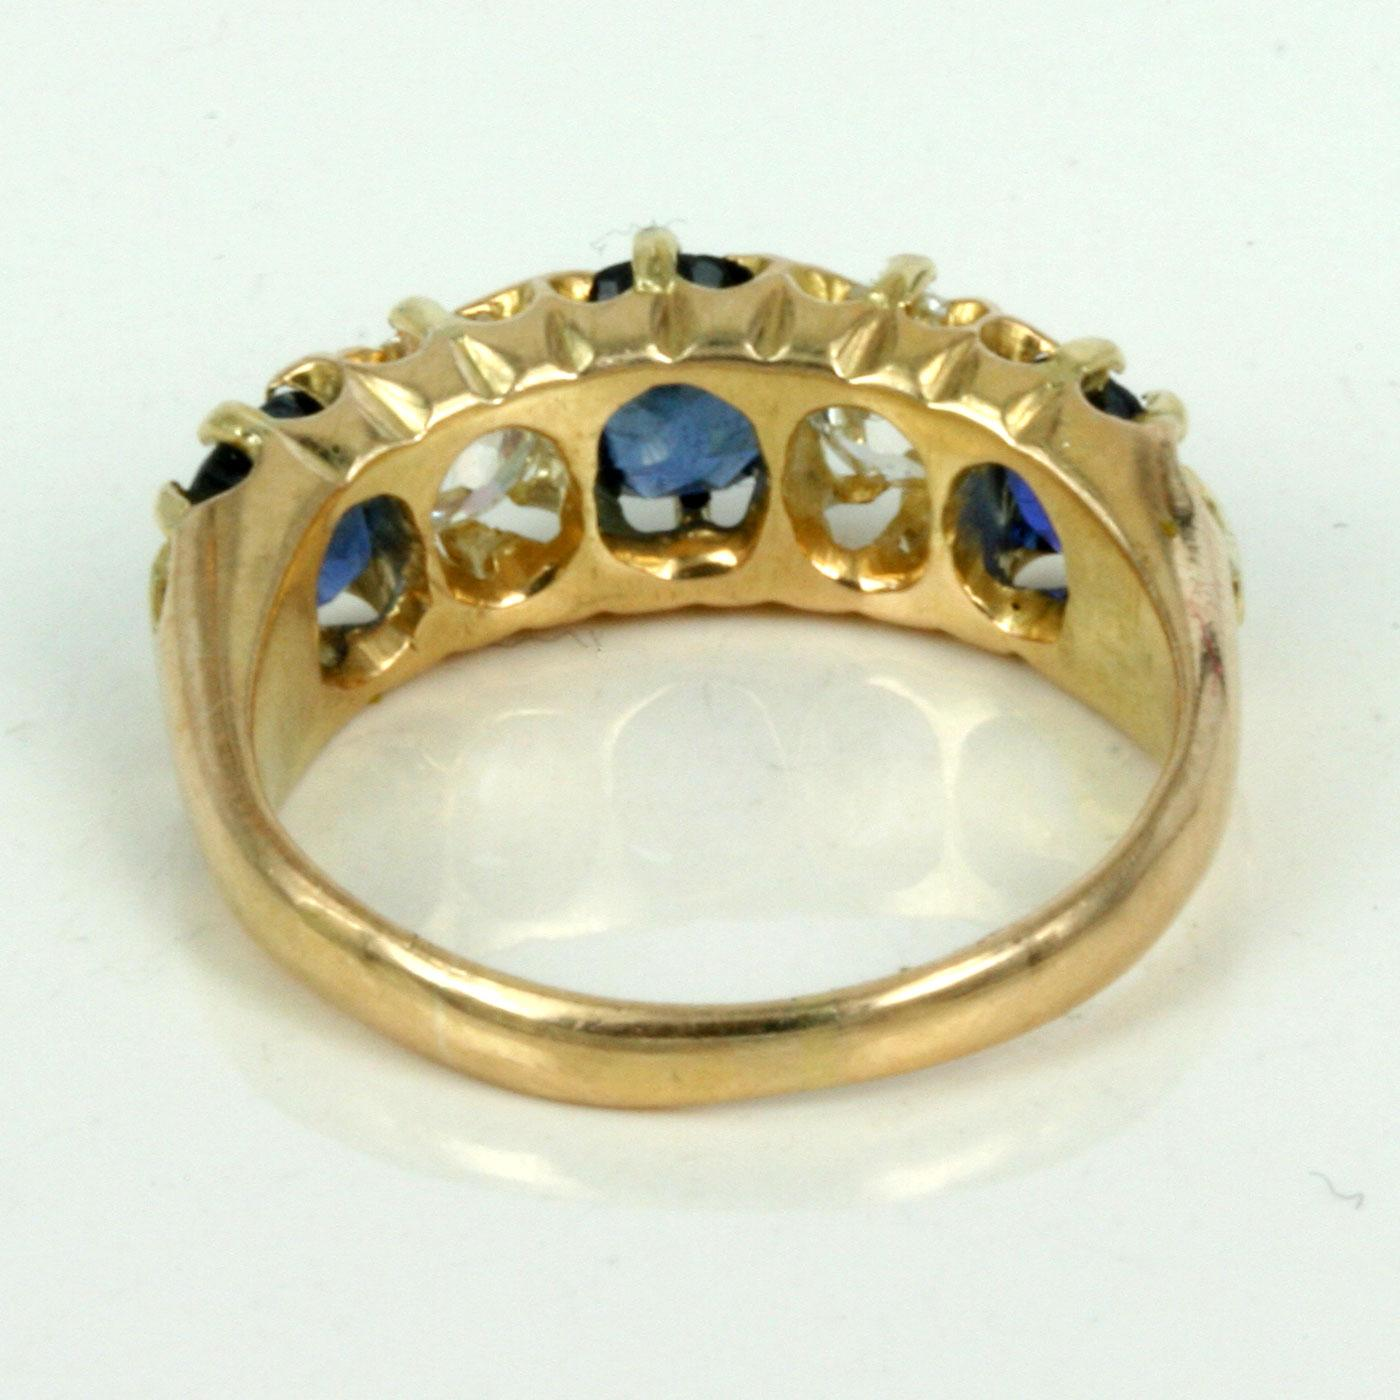 Antique sapphire and diamond